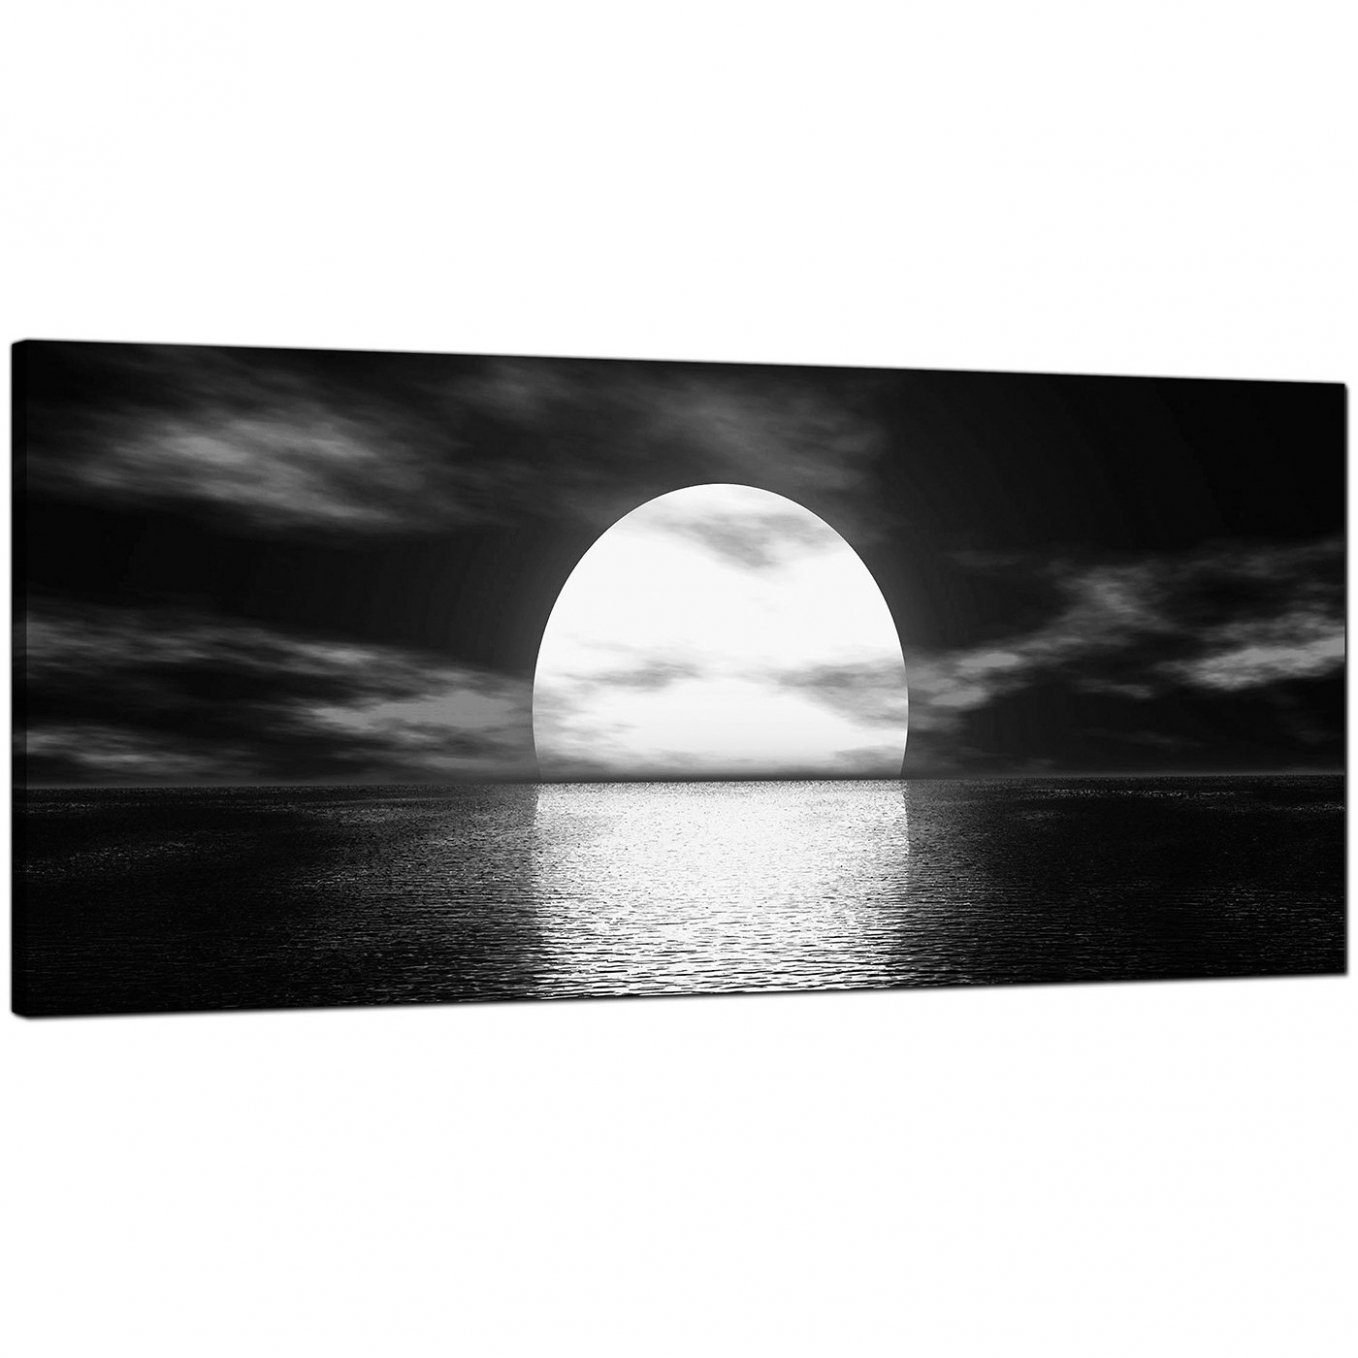 10 Best Ideas Of Black And White Large Canvas Wall Art With 2018 Black And White Photography Canvas Wall Art (View 12 of 15)